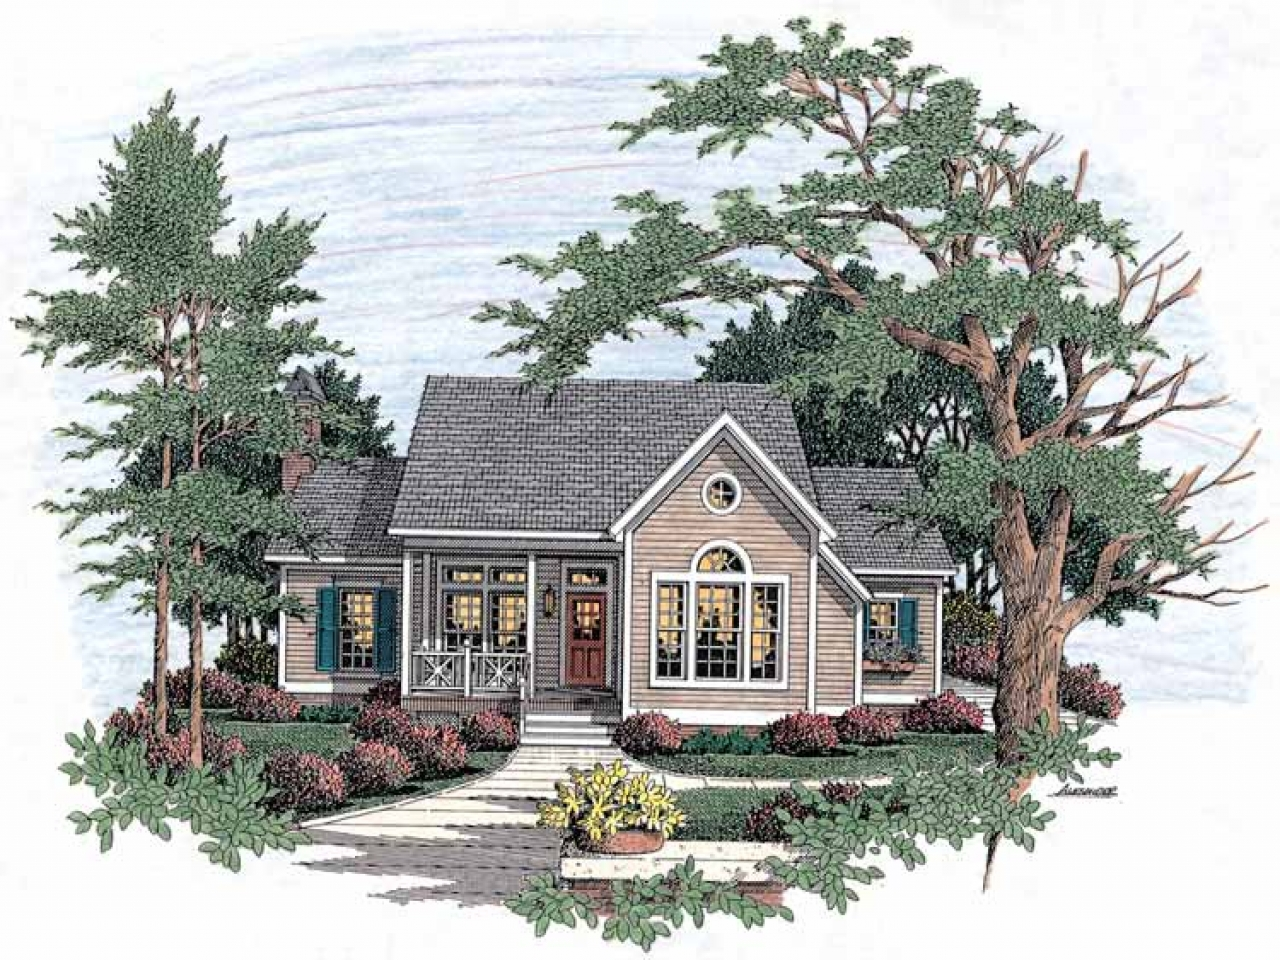 Victorian Cottage Bedroom House Plans on 2 bedroom one level house plans, small one level cottage plans, best one bedroom house plans, 1 bedroom floor plans, 6 bedroom house floor plans, 4-bedroom split-level house plans, 1 bedroom lake house plans, one bedroom cottage plans, great room house plans, 1 bedroom prefab cottages, 1 bedroom modern house plans, small 2 bedroom square house plans, 2 bedroom 1 bathroom house plans, small 1 bedroom house plans, 1 bedroom carriage house plans, one bedroom house floor plans, 5-bedroom open floor house plans, 2 bedroom 800 square feet house plans, 5 bedroom 3 bath modular home plans, small guest house floor plans,